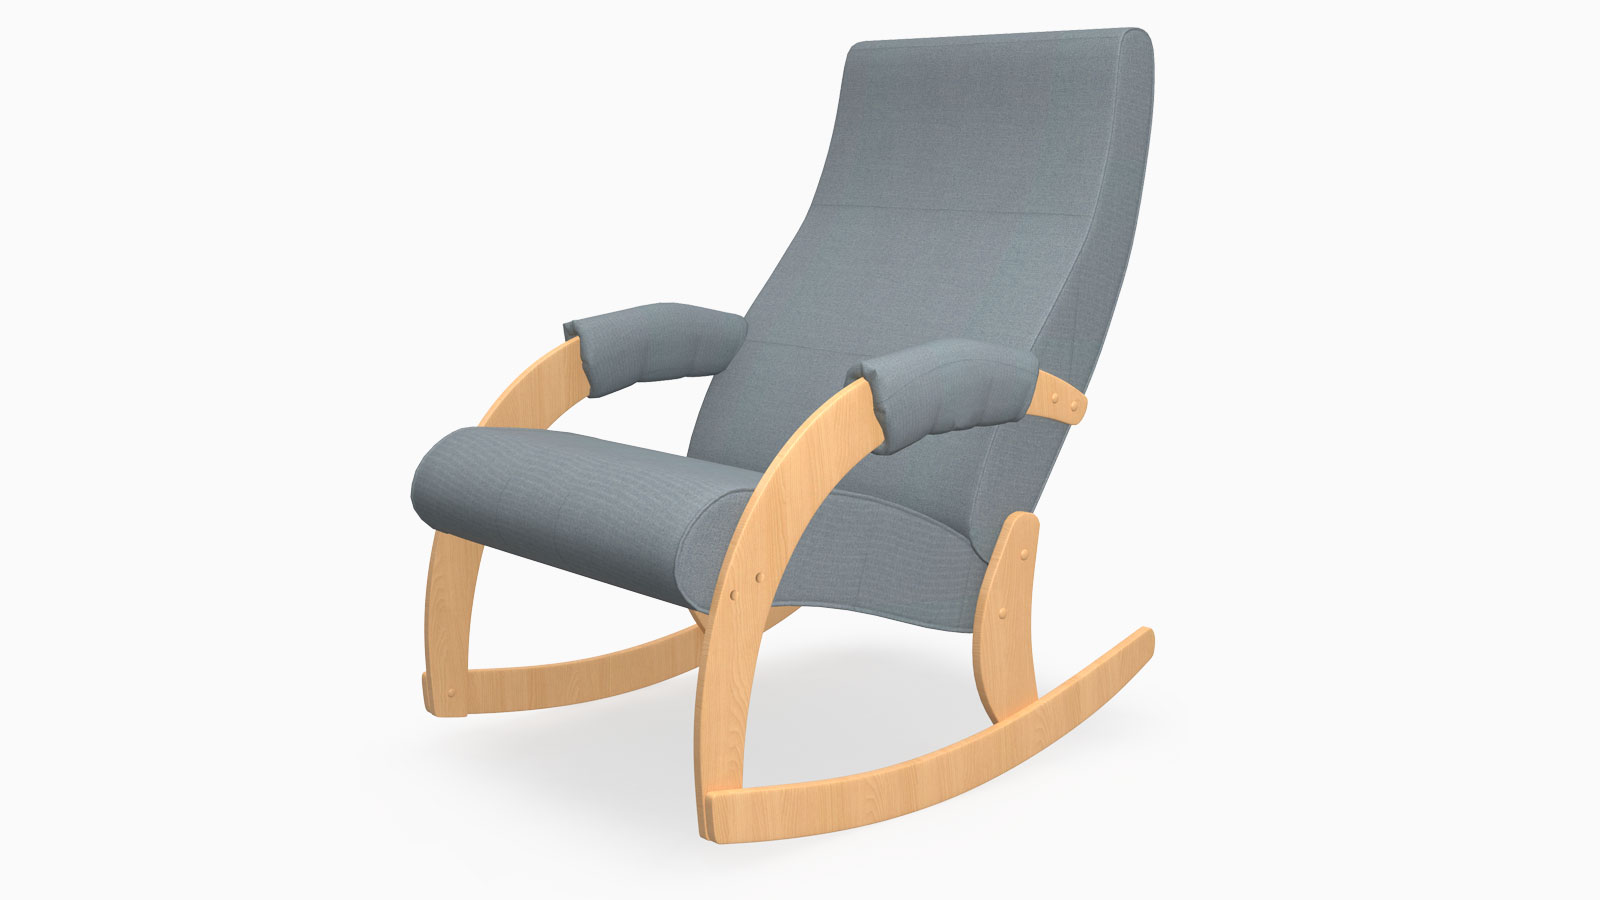 Slat Back - One of the most stylish and compact armchairs